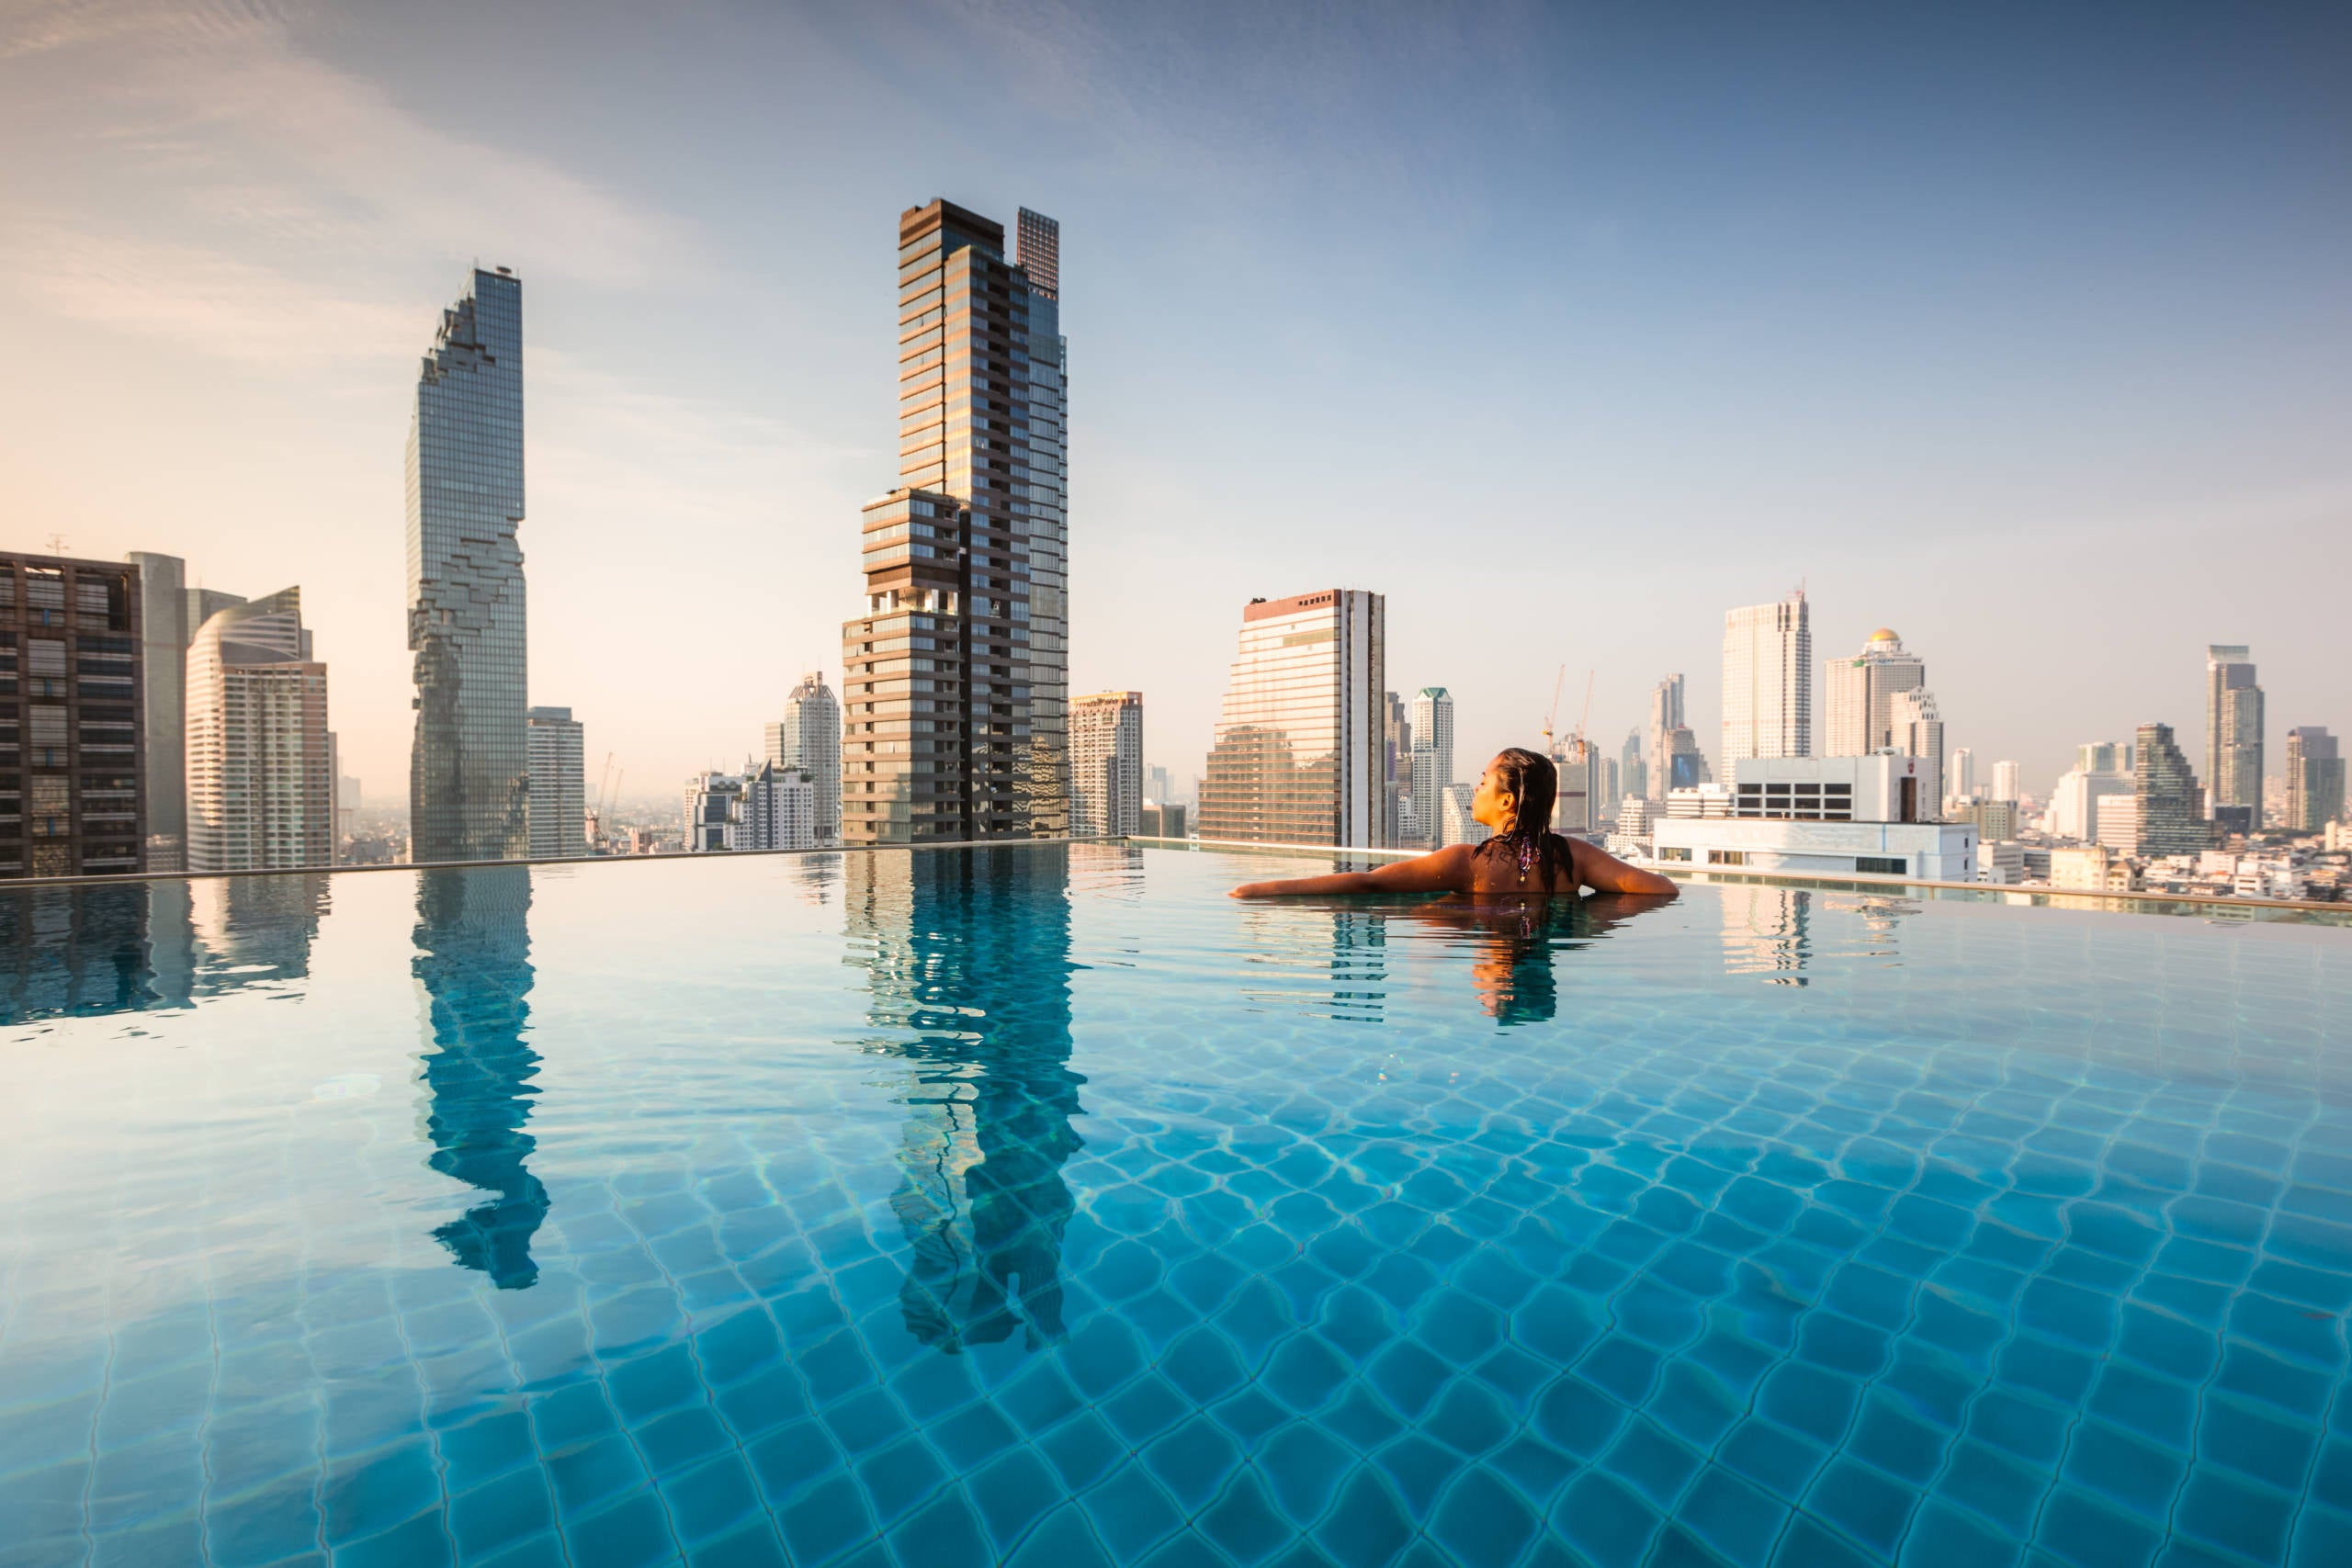 Great deal: London to Bangkok in Finnair business class from £1,020 roundtrip - The Points Guy UK